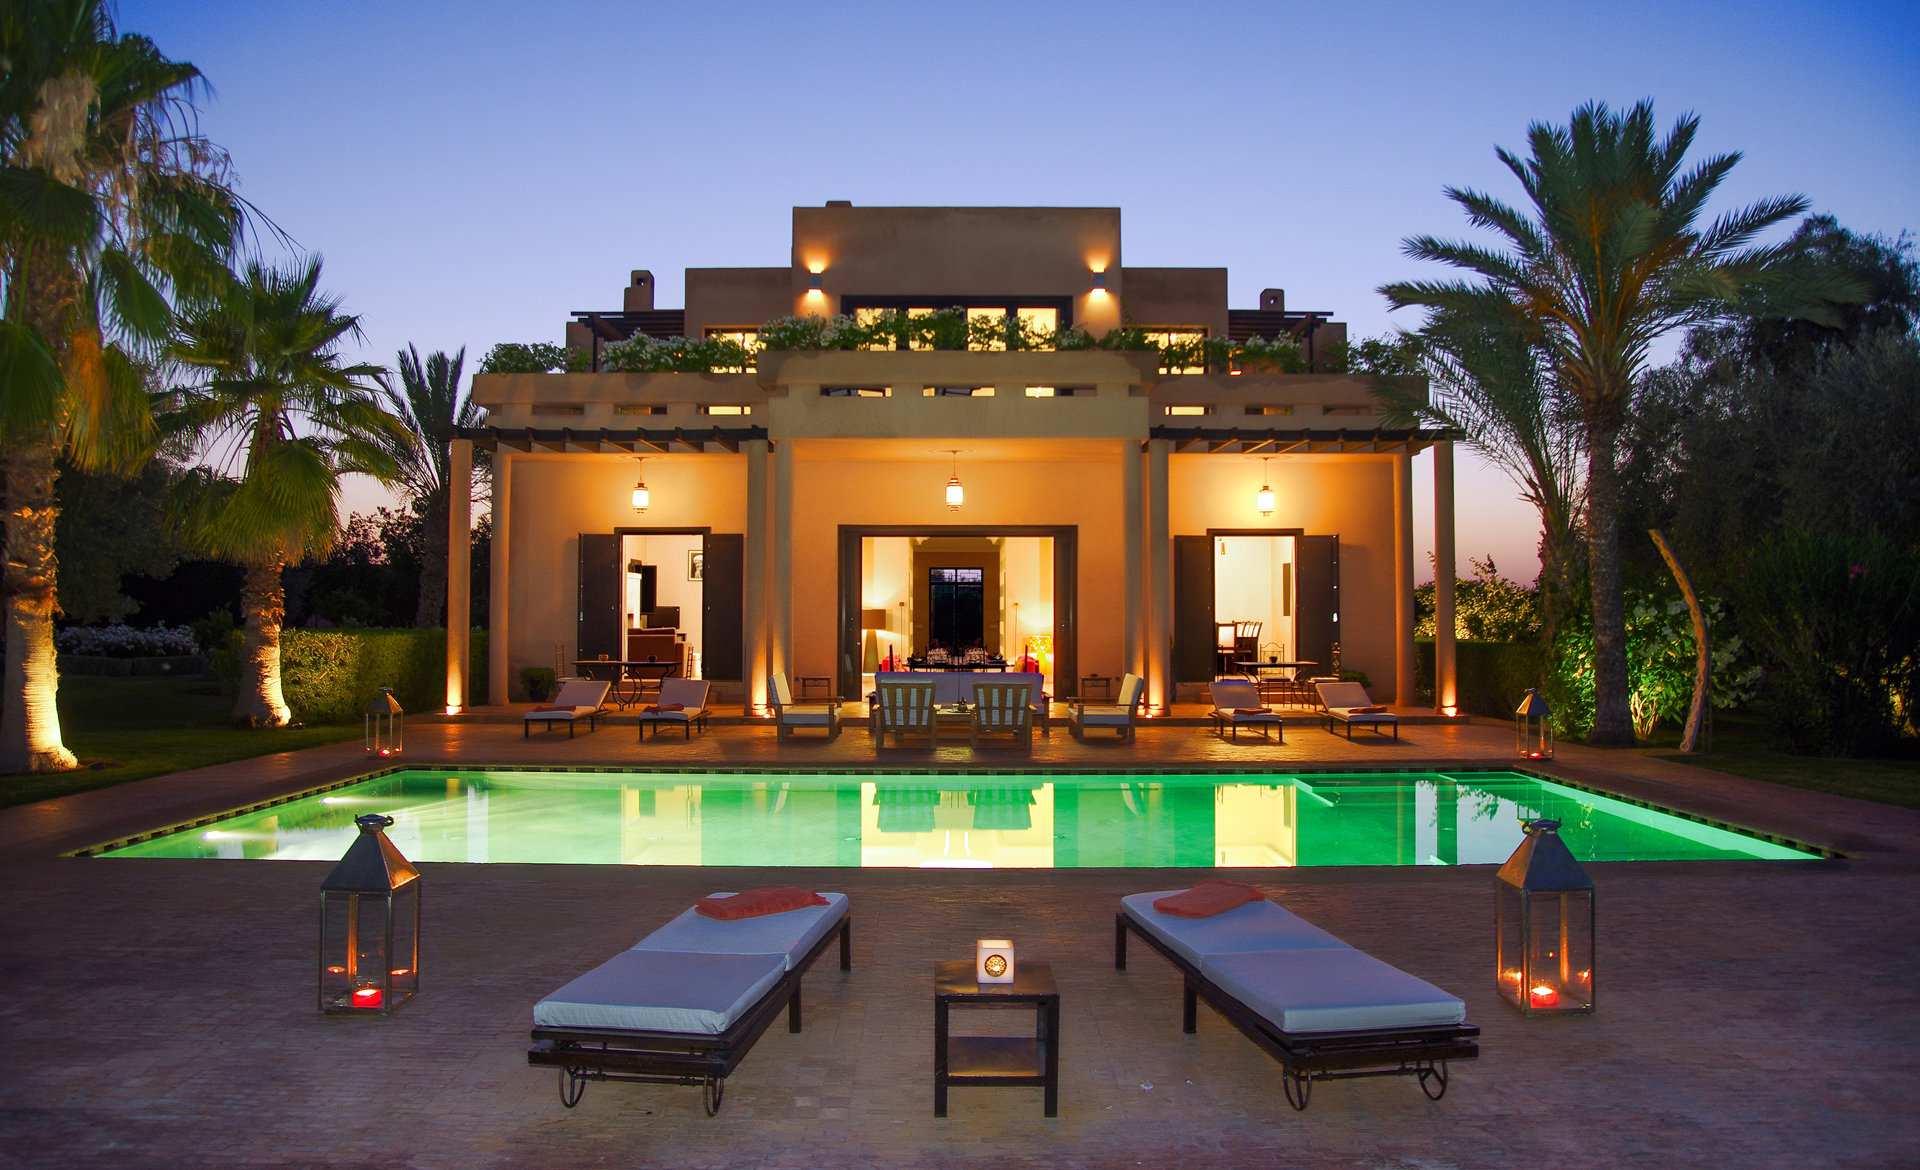 Location villa marhaba prestige villa louer for Pictures of beautiful houses inside and outside